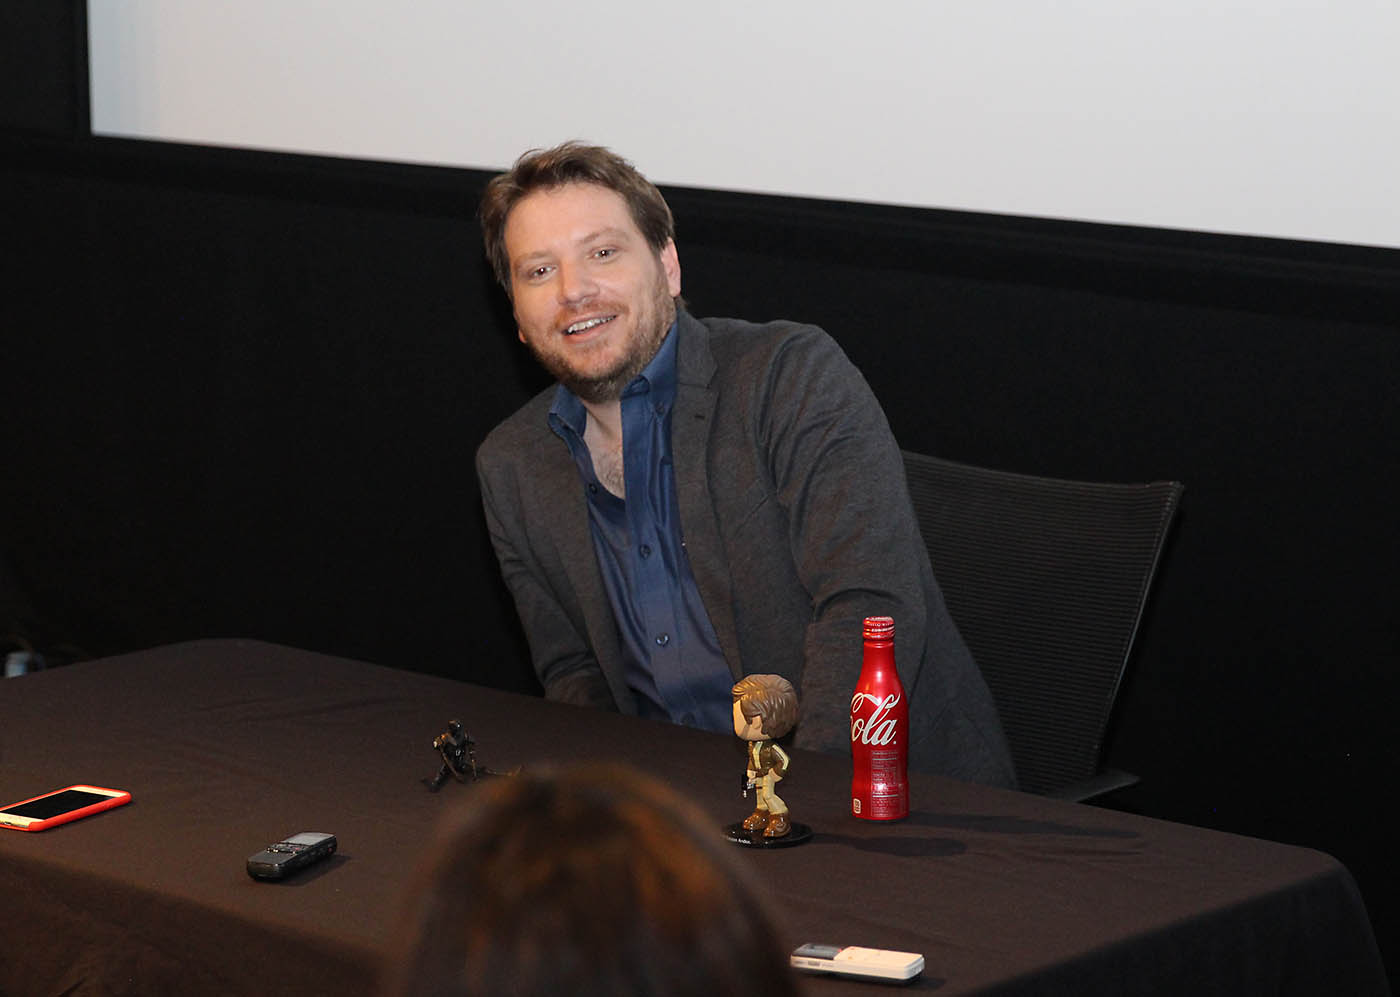 Gareth Edwards #RogueOneEvent Interview